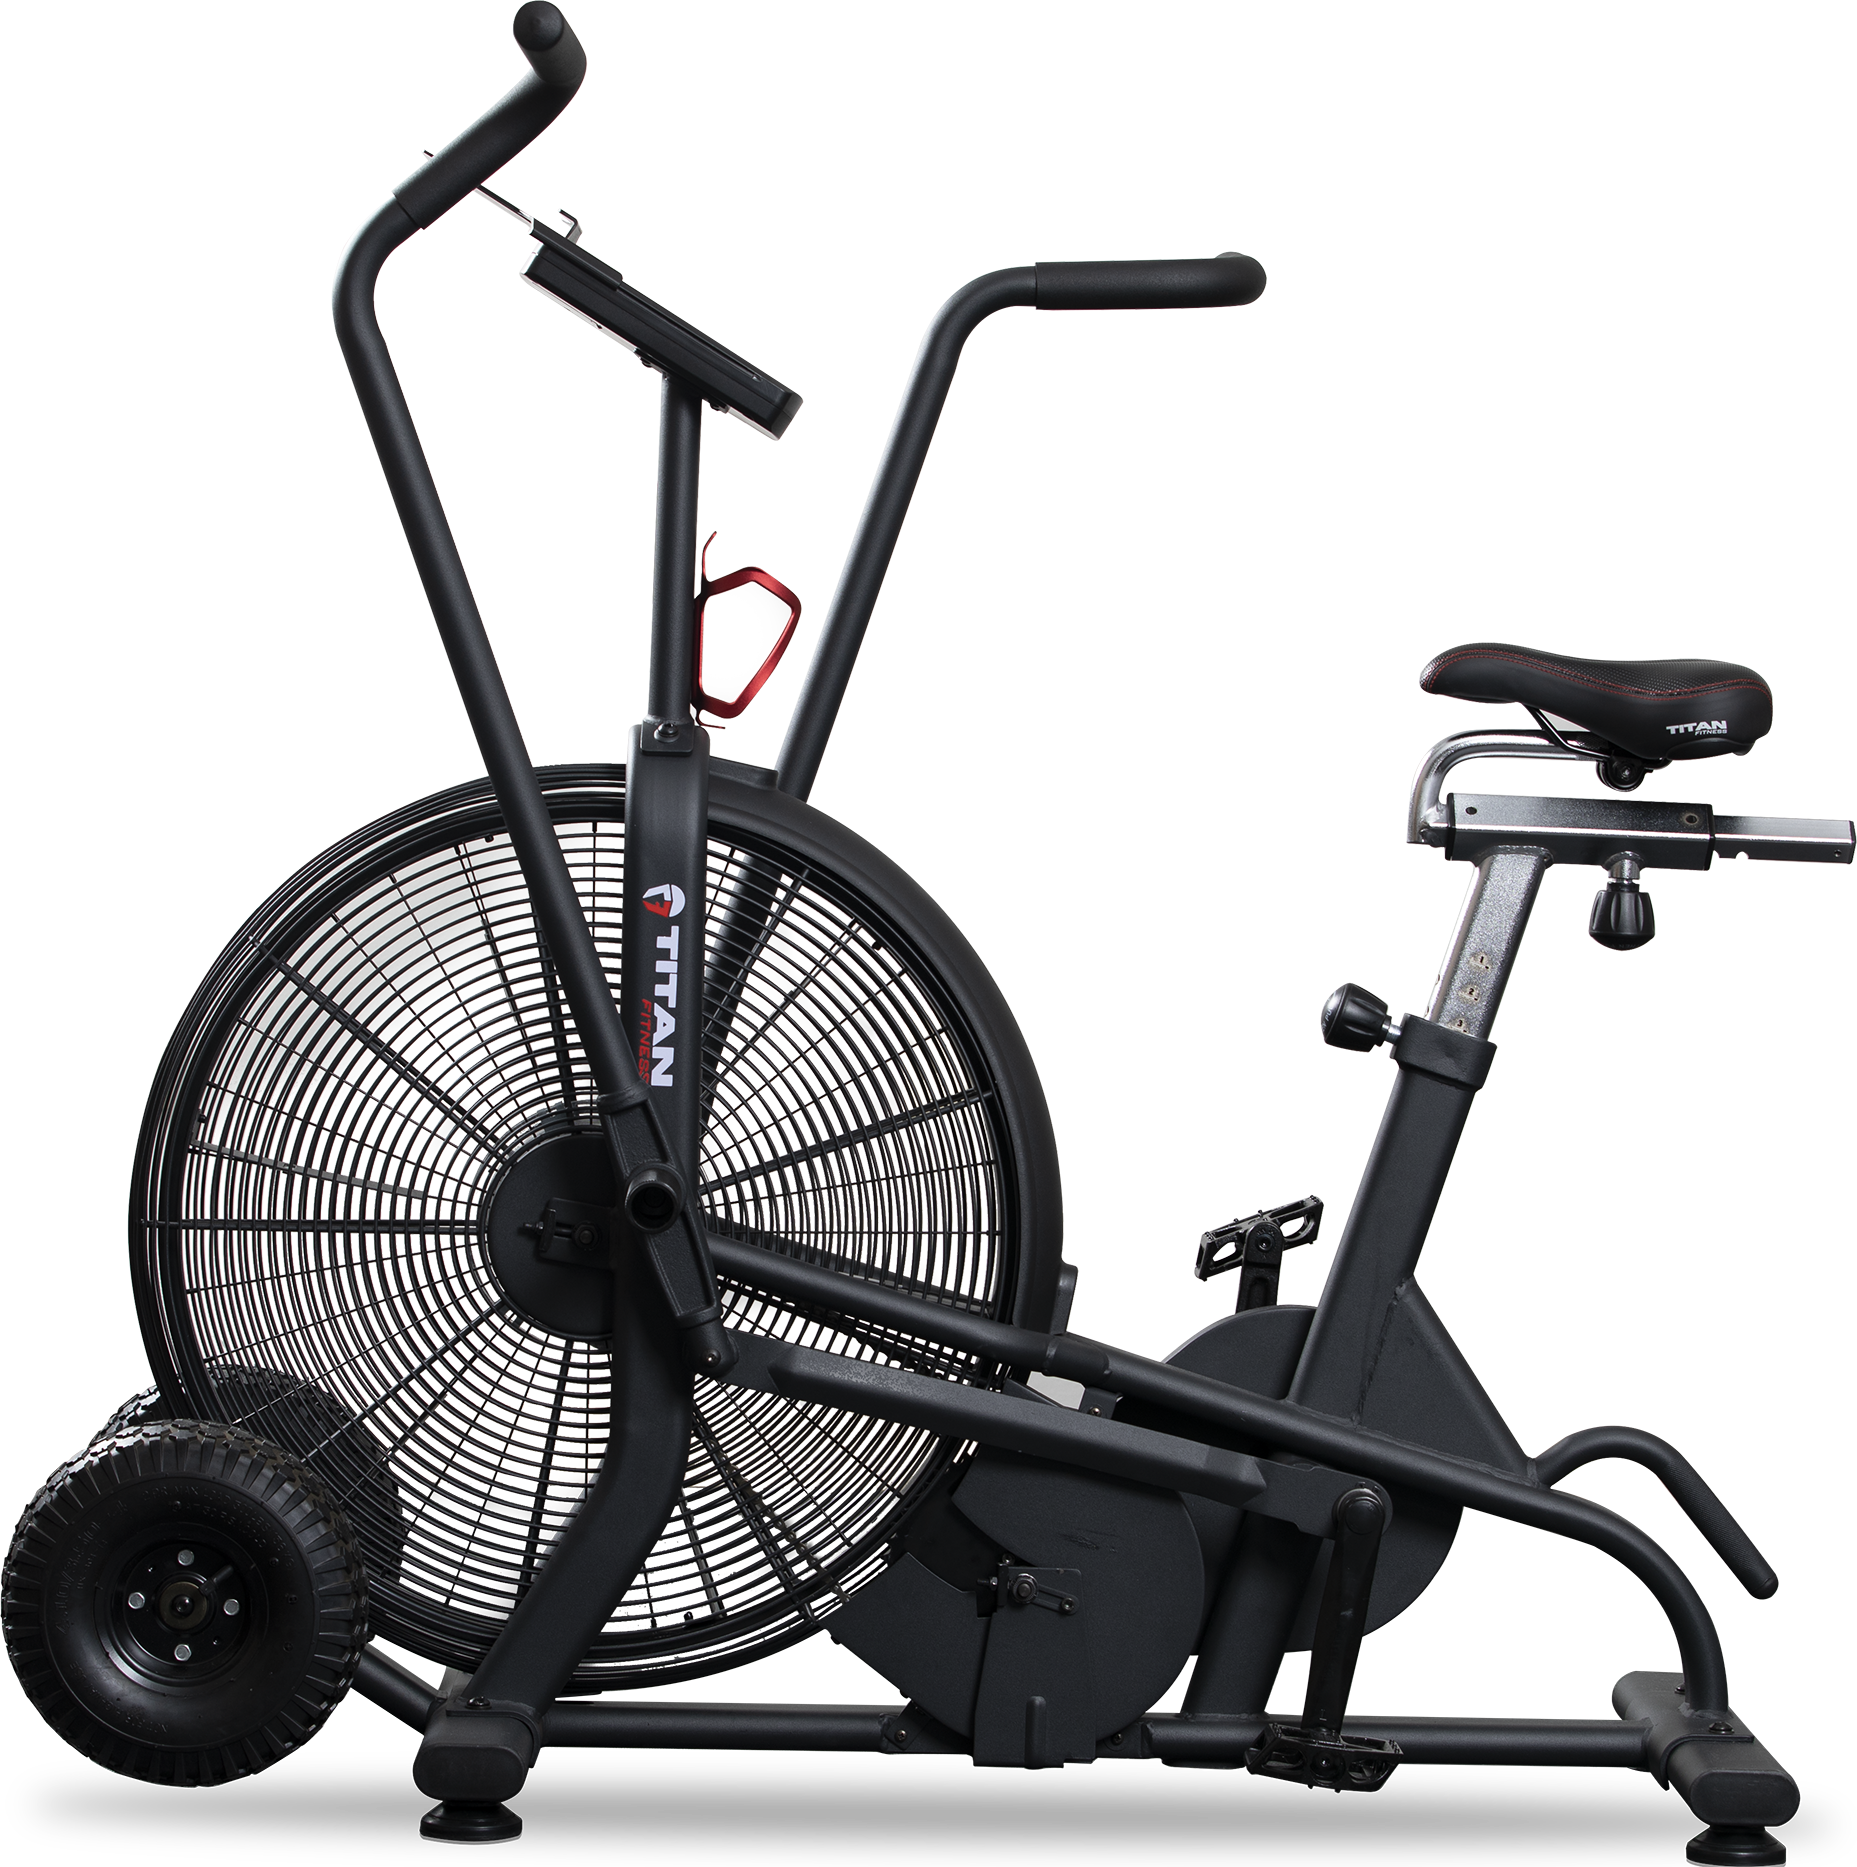 Which cardio equipment to get from TITAN?